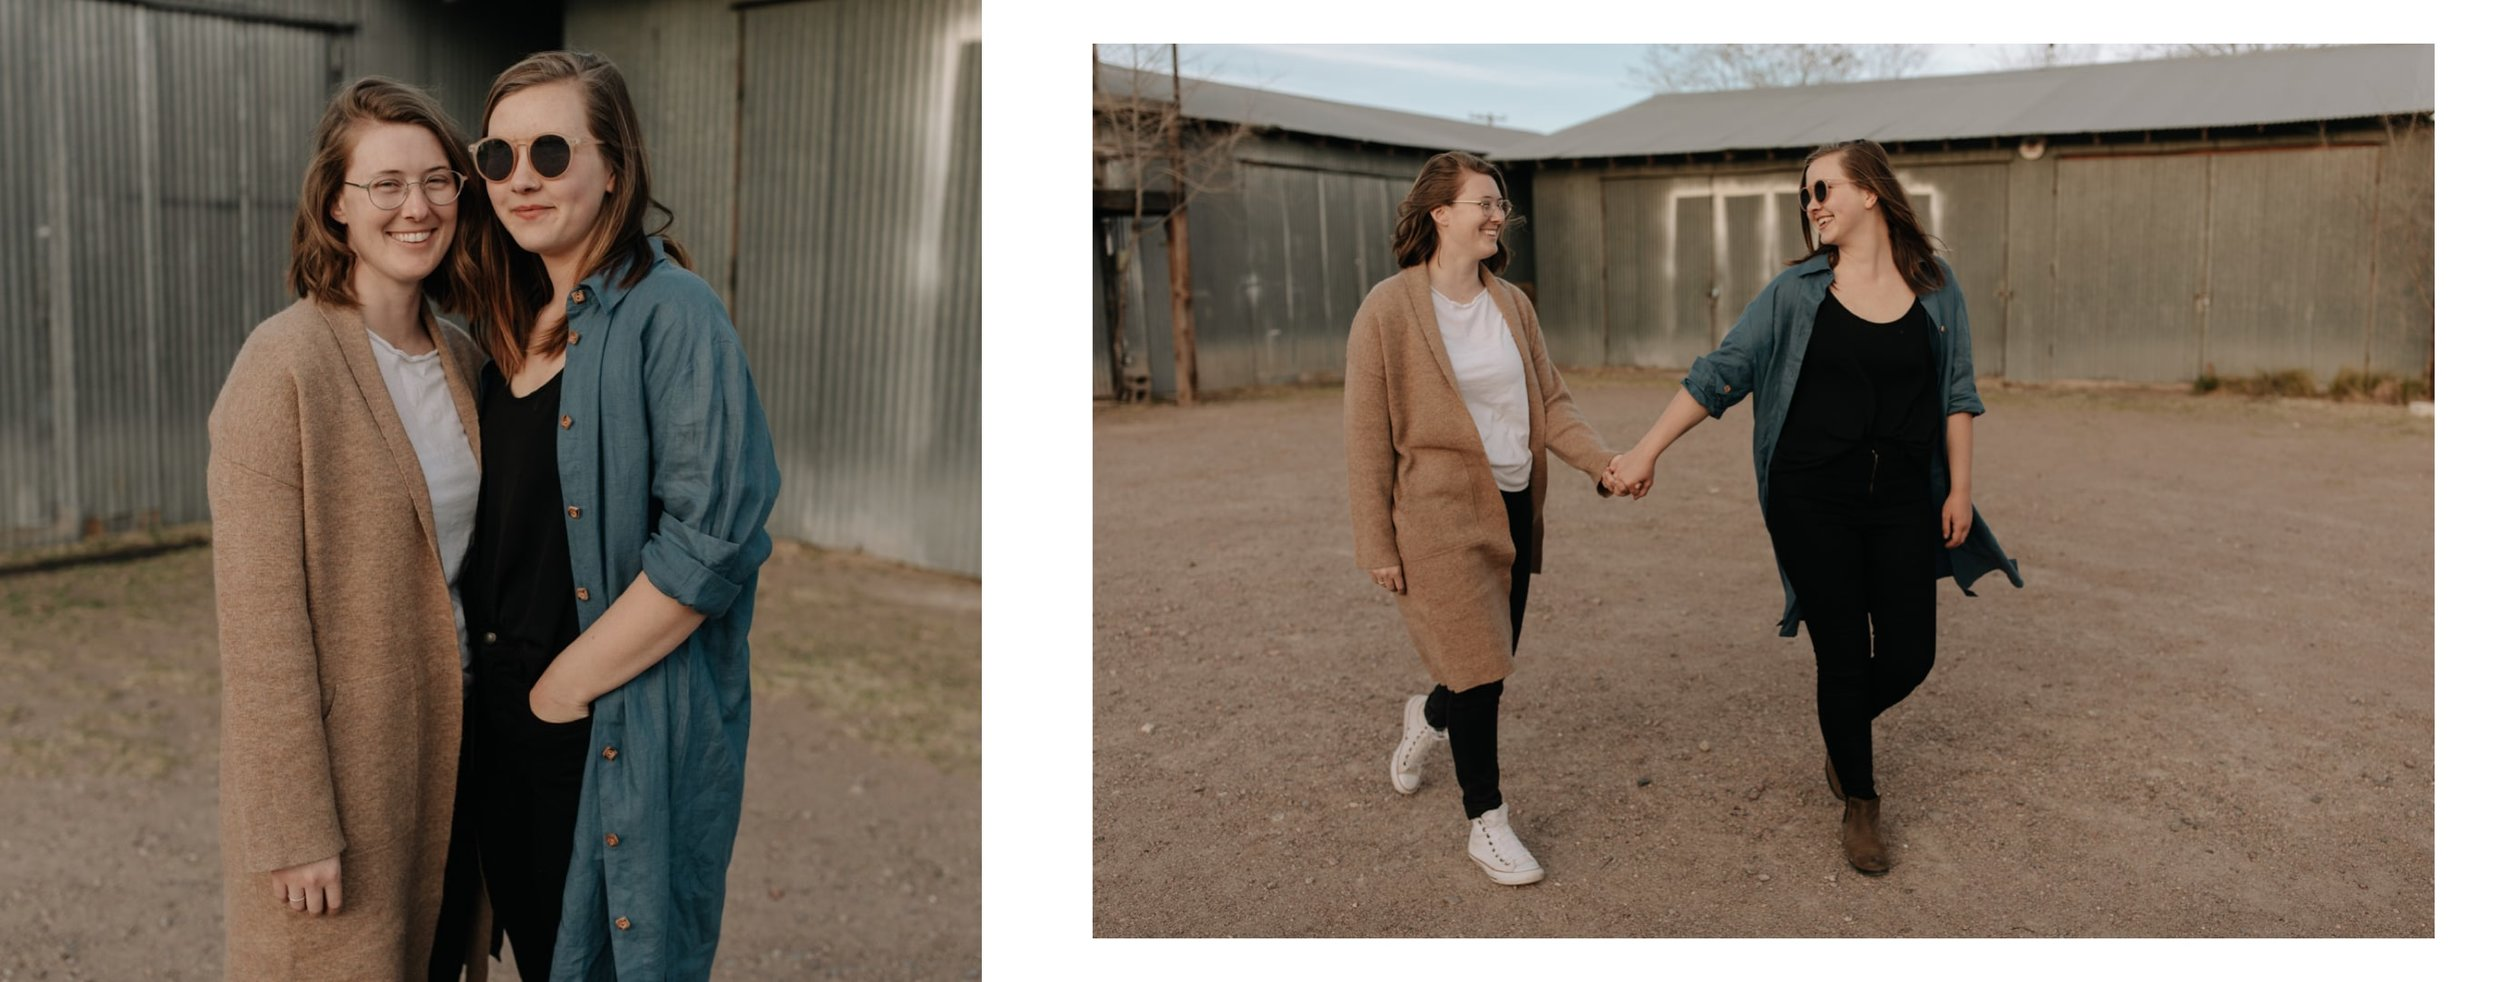 Marfa-TX-Engagement-Photo-Shoot_9.jpg